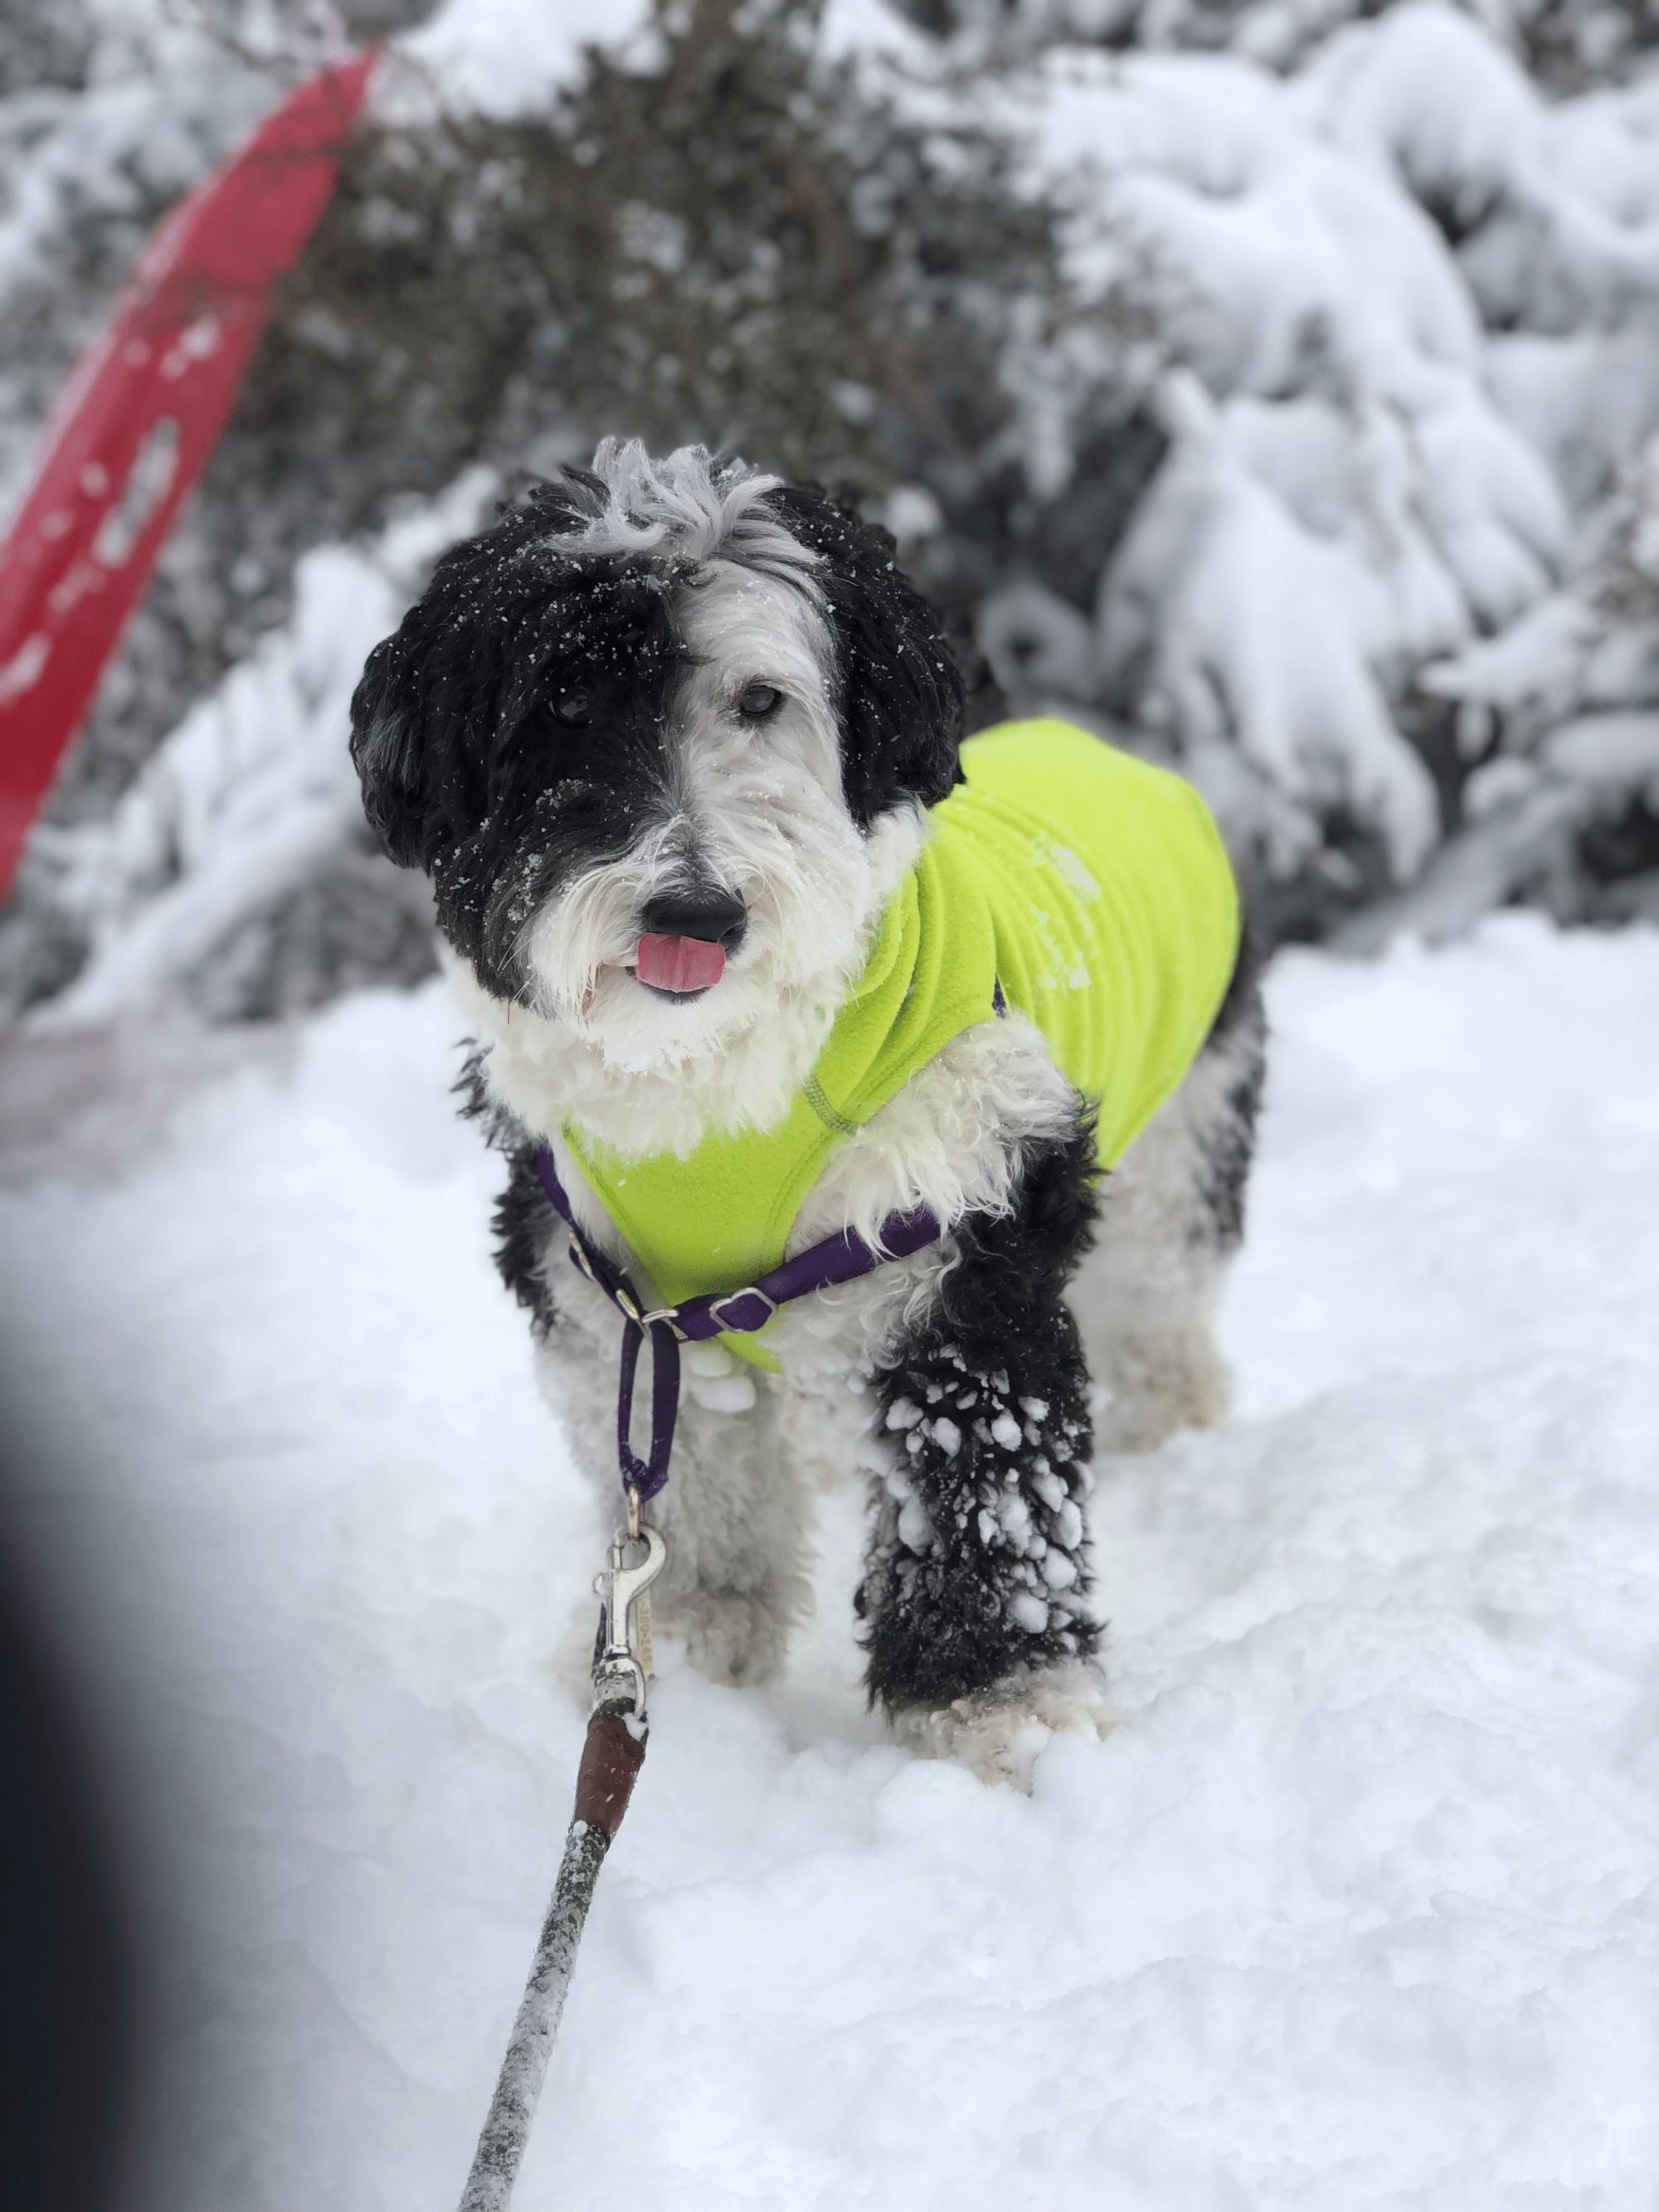 Meet Bear the Sheepadoodle, enjoying his time outdoors in Silver Spring. That area of Maryland saw over 10 inches of snow. (Courtesy Rachel Rushforth)